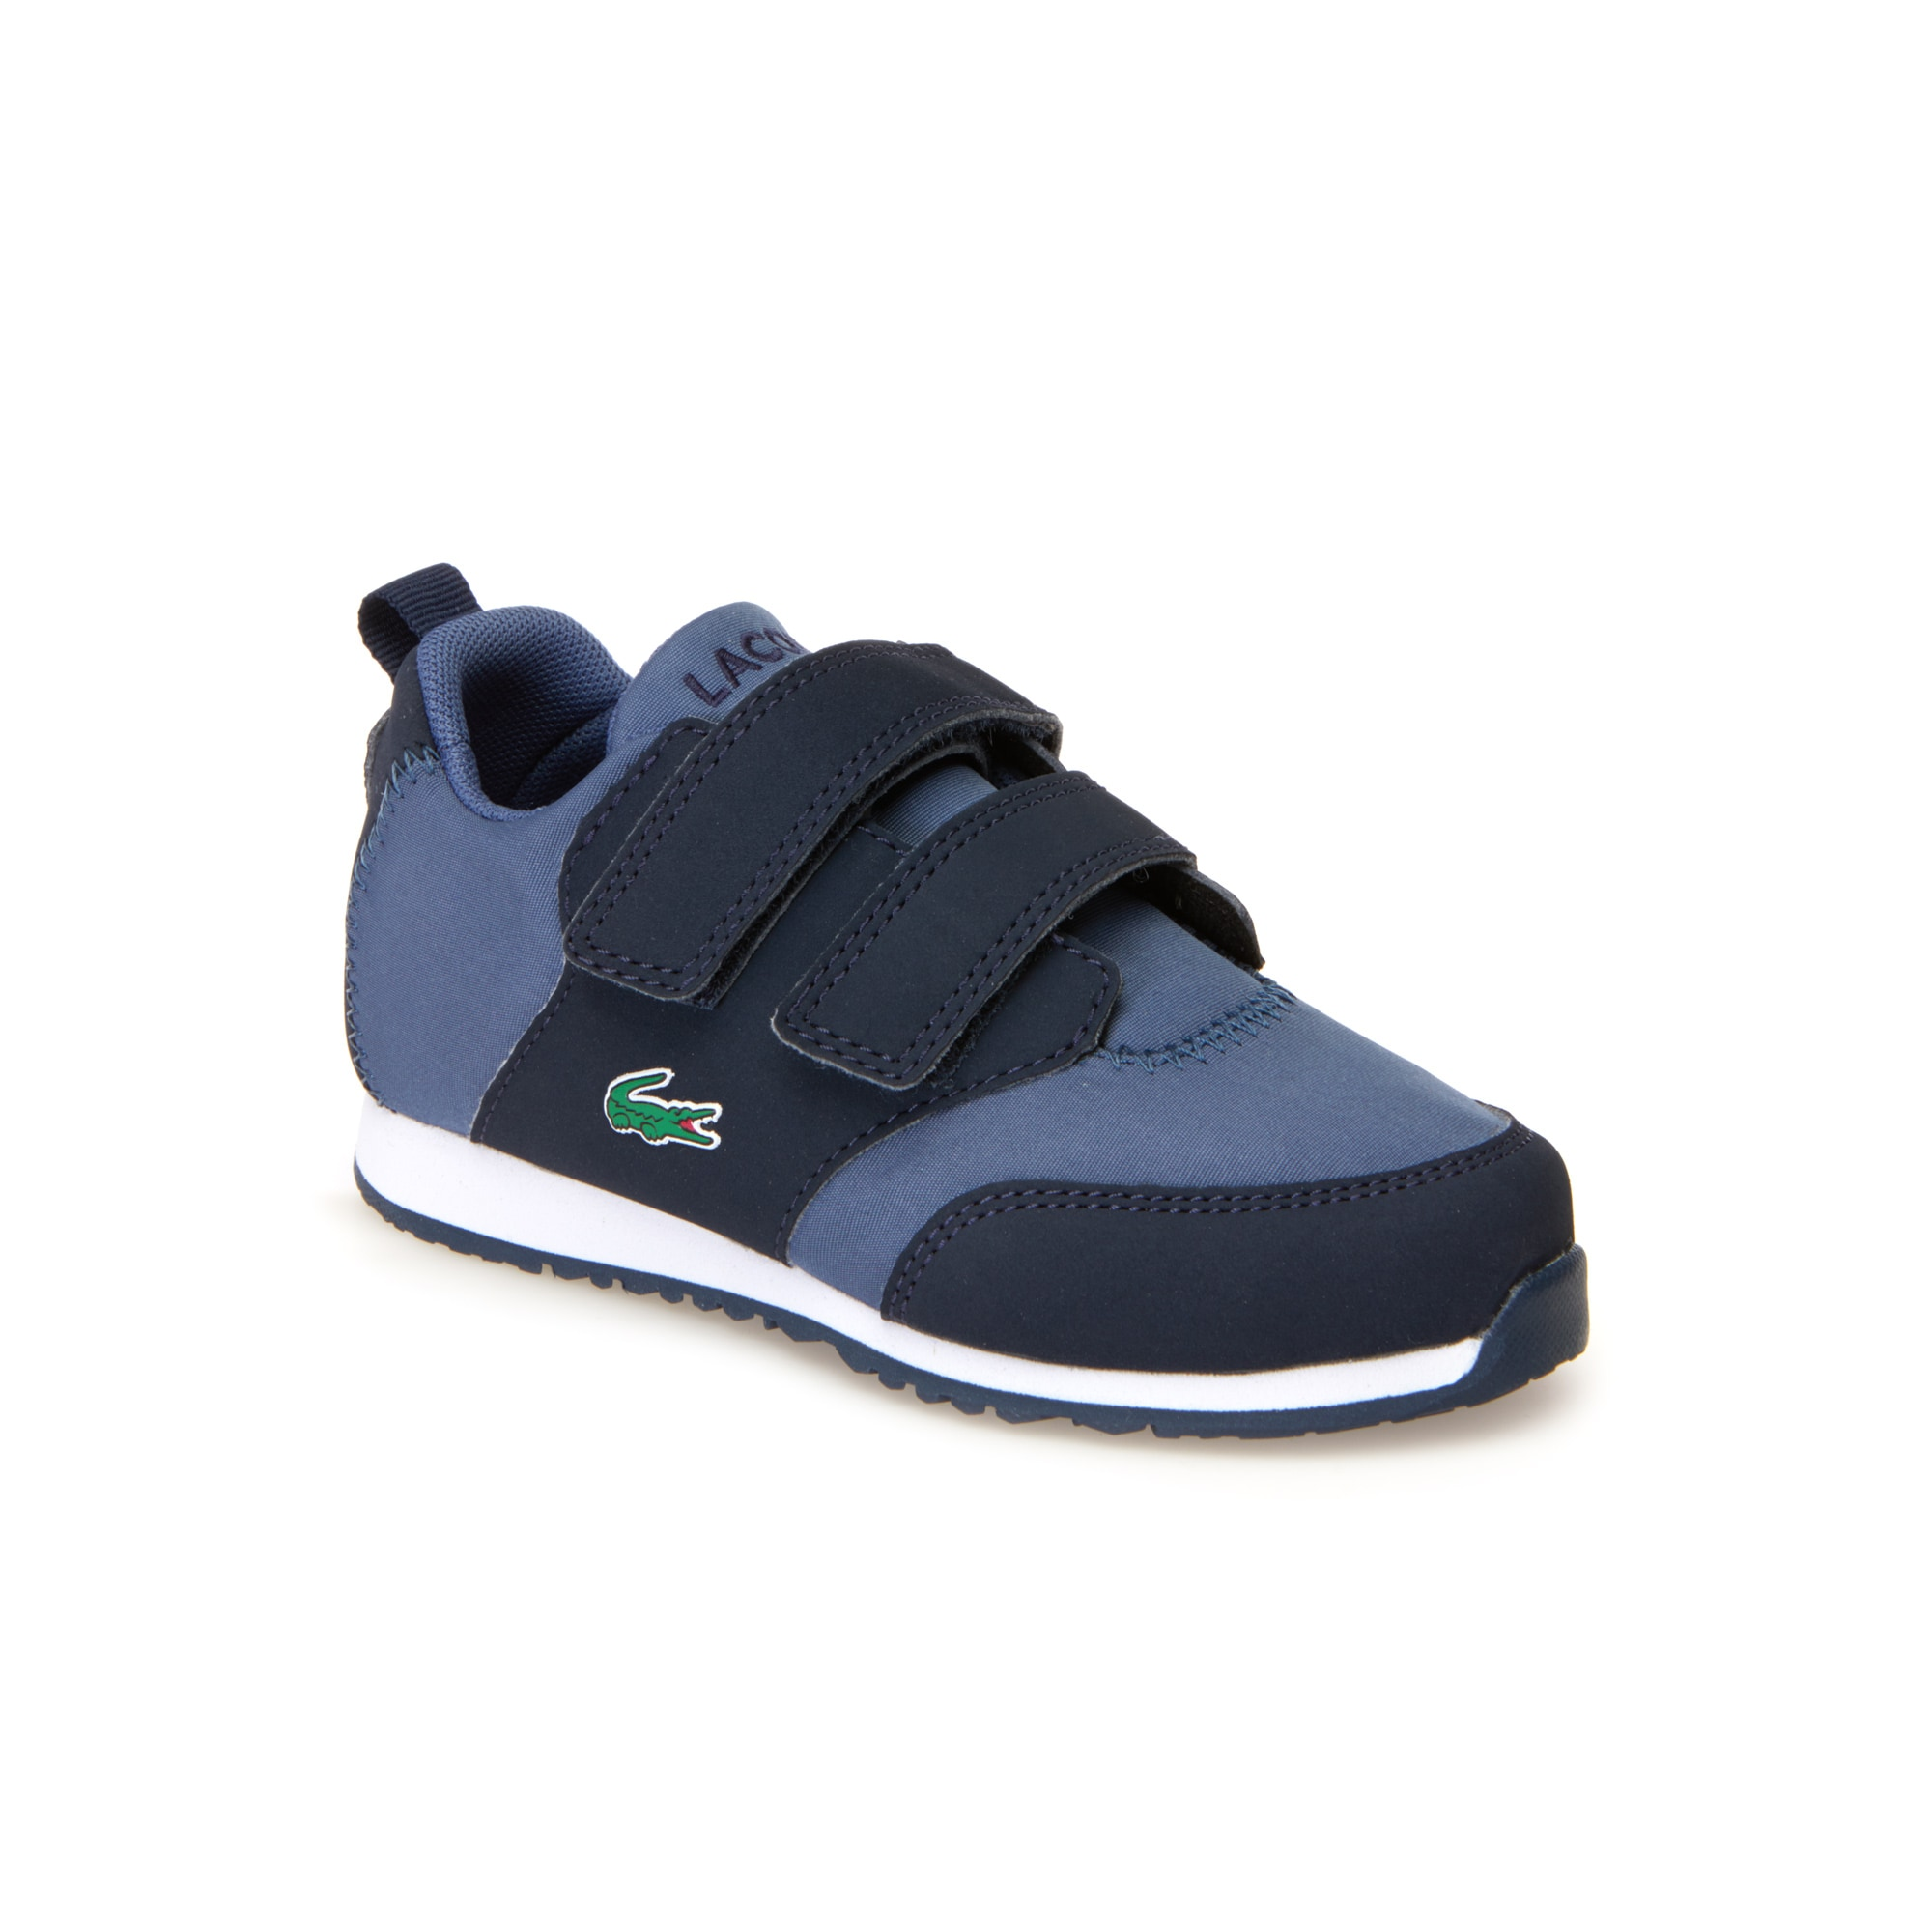 Baby-Sneakers L.IGHT aus Textil und Synthetik